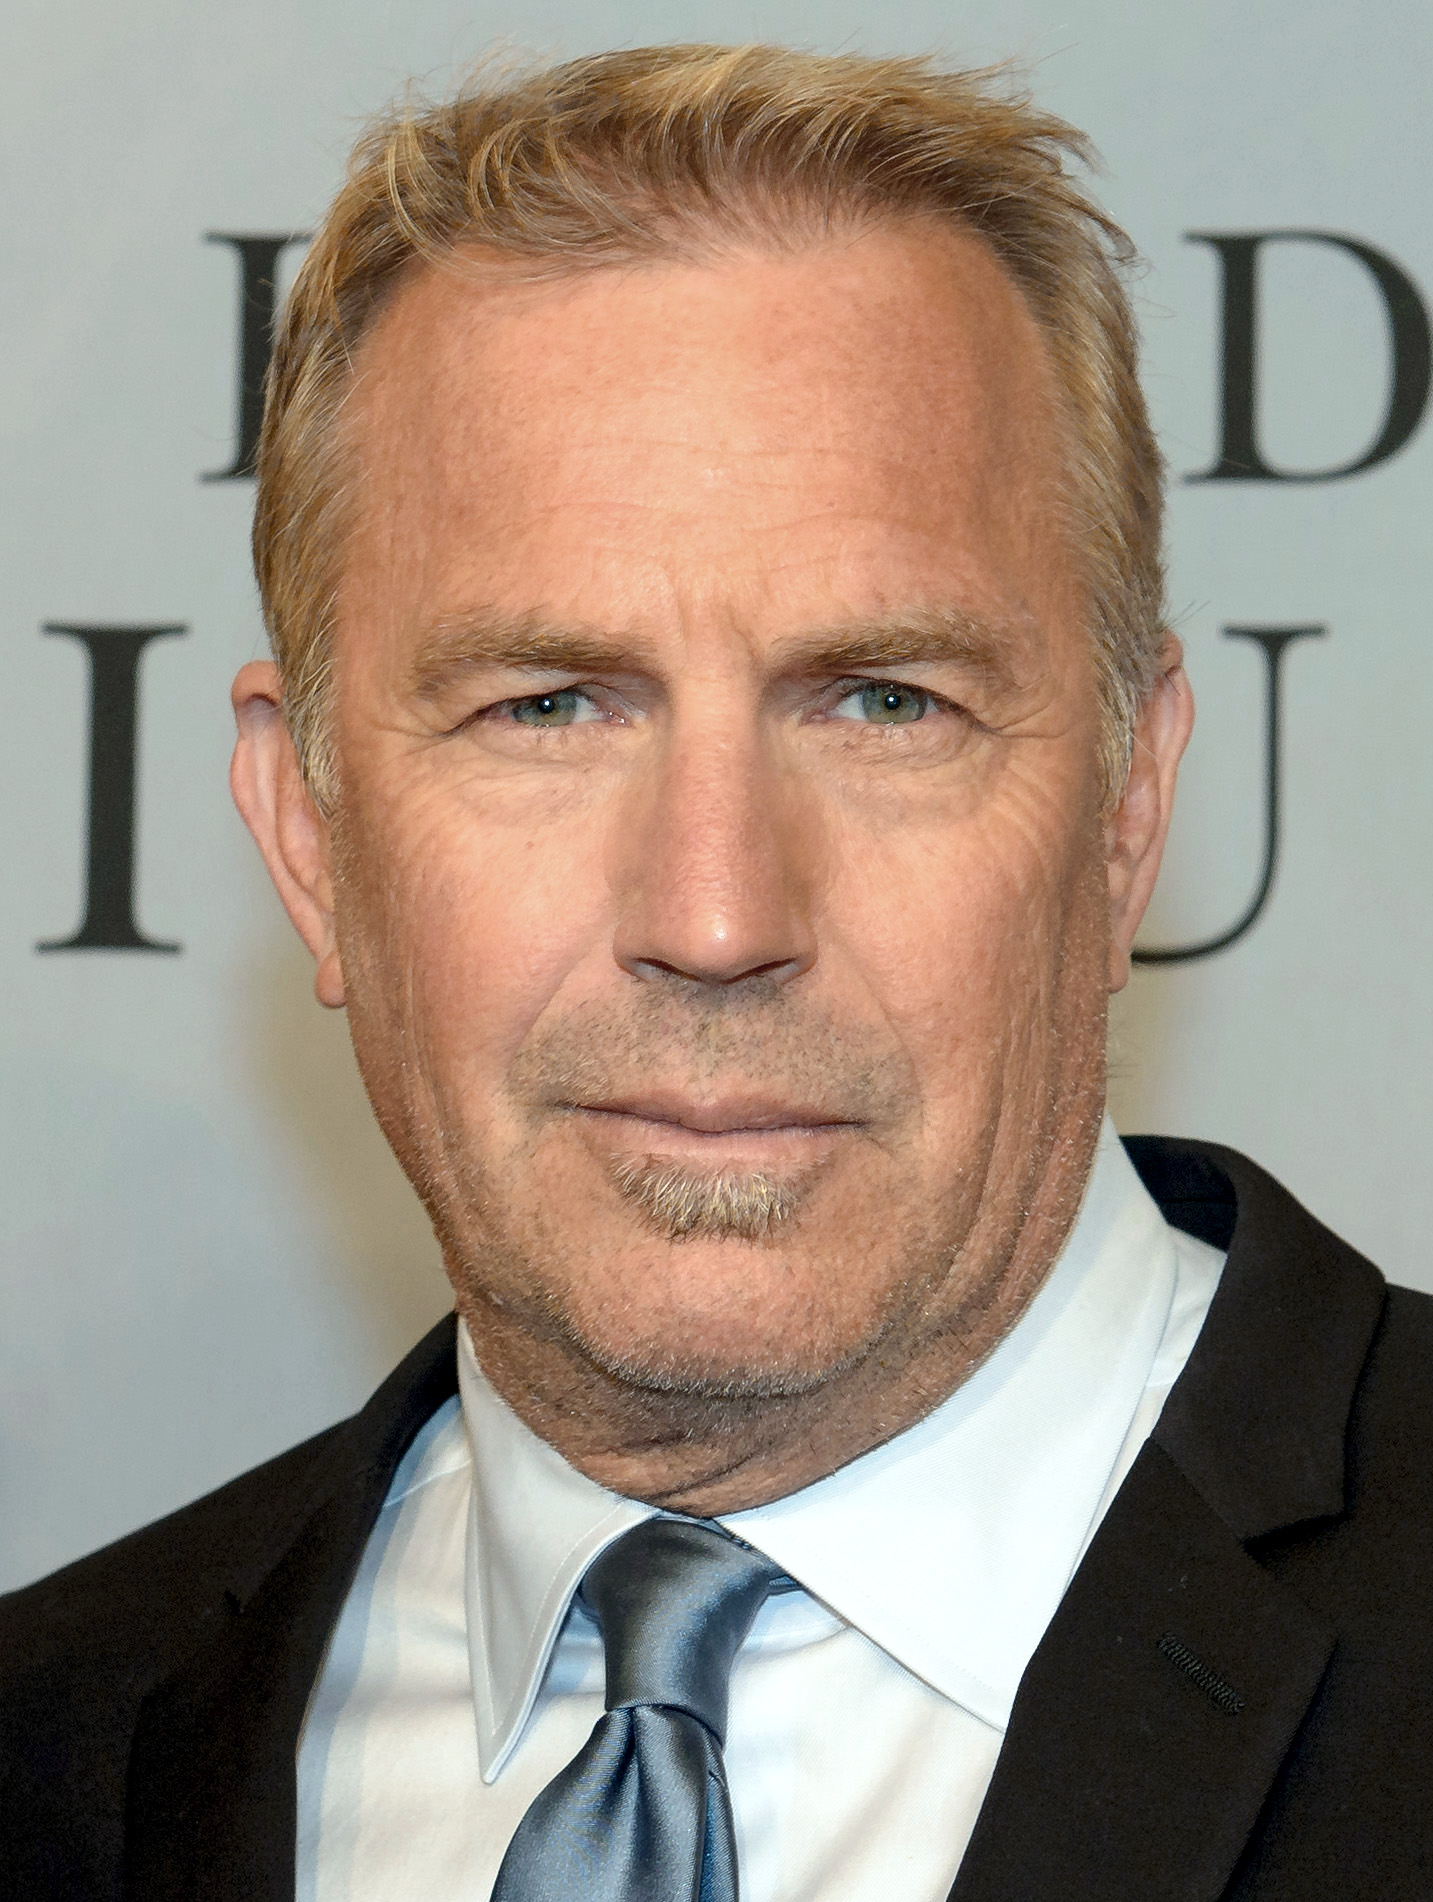 The 63-year old son of father William Costner and mother Sharon Rae Kevin Costner in 2018 photo. Kevin Costner earned a  million dollar salary - leaving the net worth at 150 million in 2018